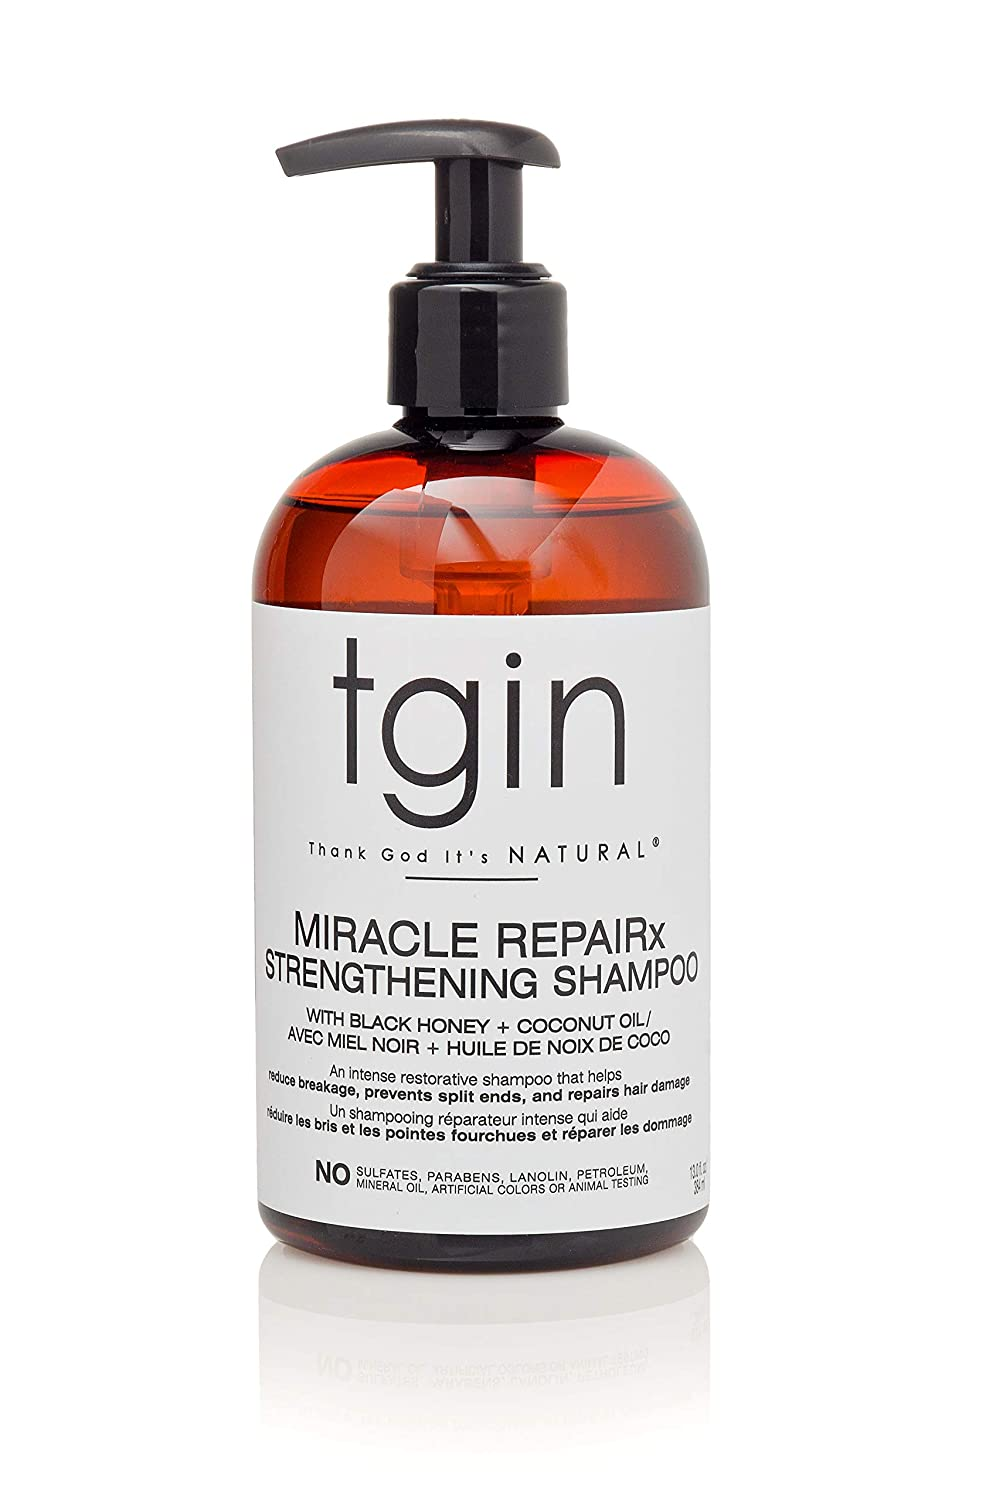 tgin Miracle RepaiRx Strengthening Shampoo For Natural Hair - Dry Hair - Curly Hair - 13 Oz